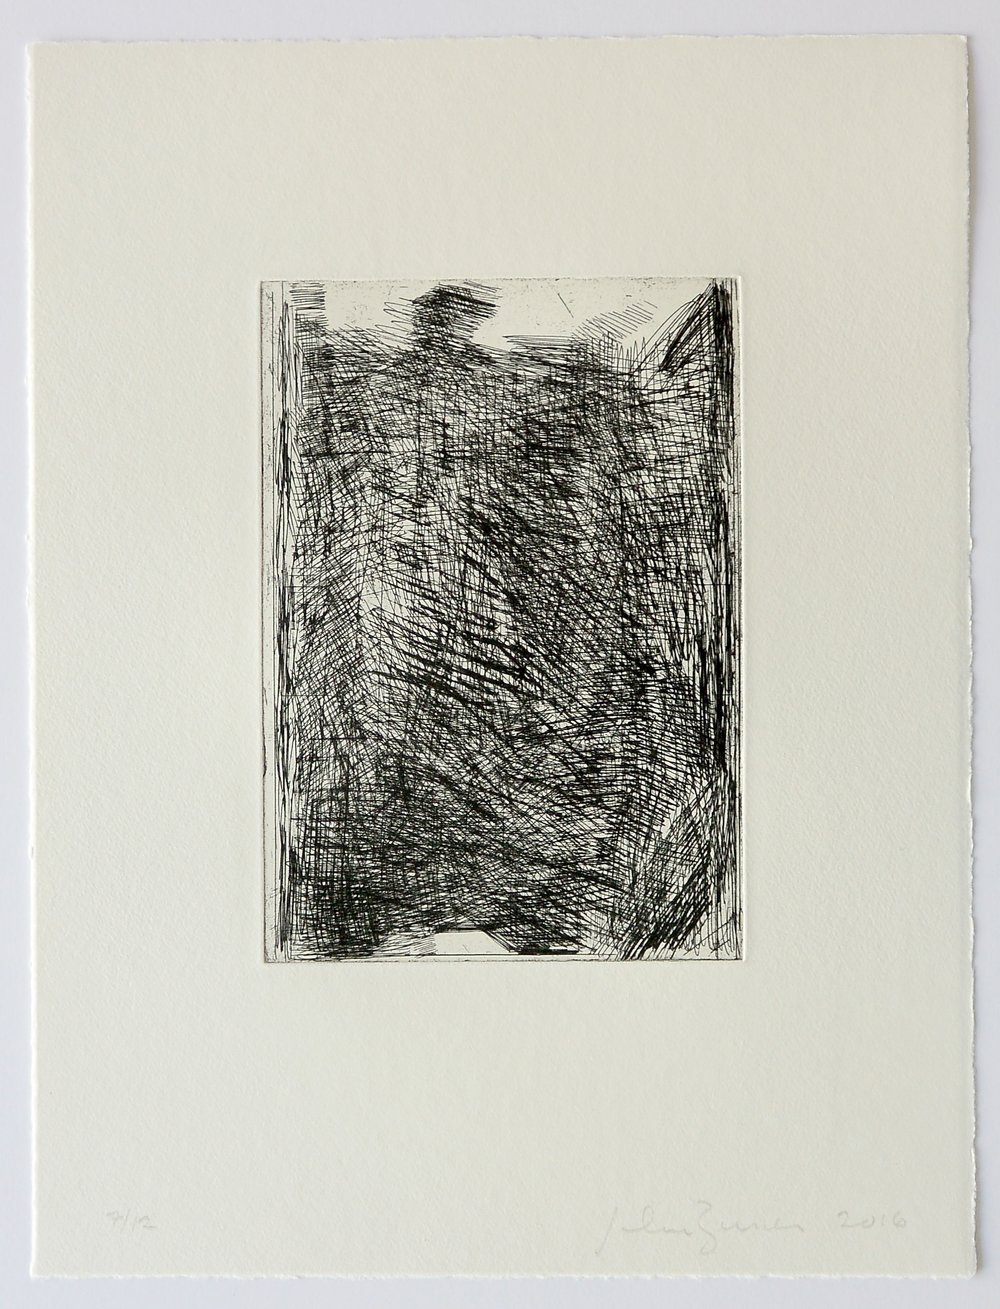 John Zurier,  Black Hardground  2016, Soft ground etching, ed.12, sheet: 13 7/8 x 10 3/4 inches; image: 7 5/8 x 5 3/4 inches, JZU1609  11/12  Lawrence Markey Inc.